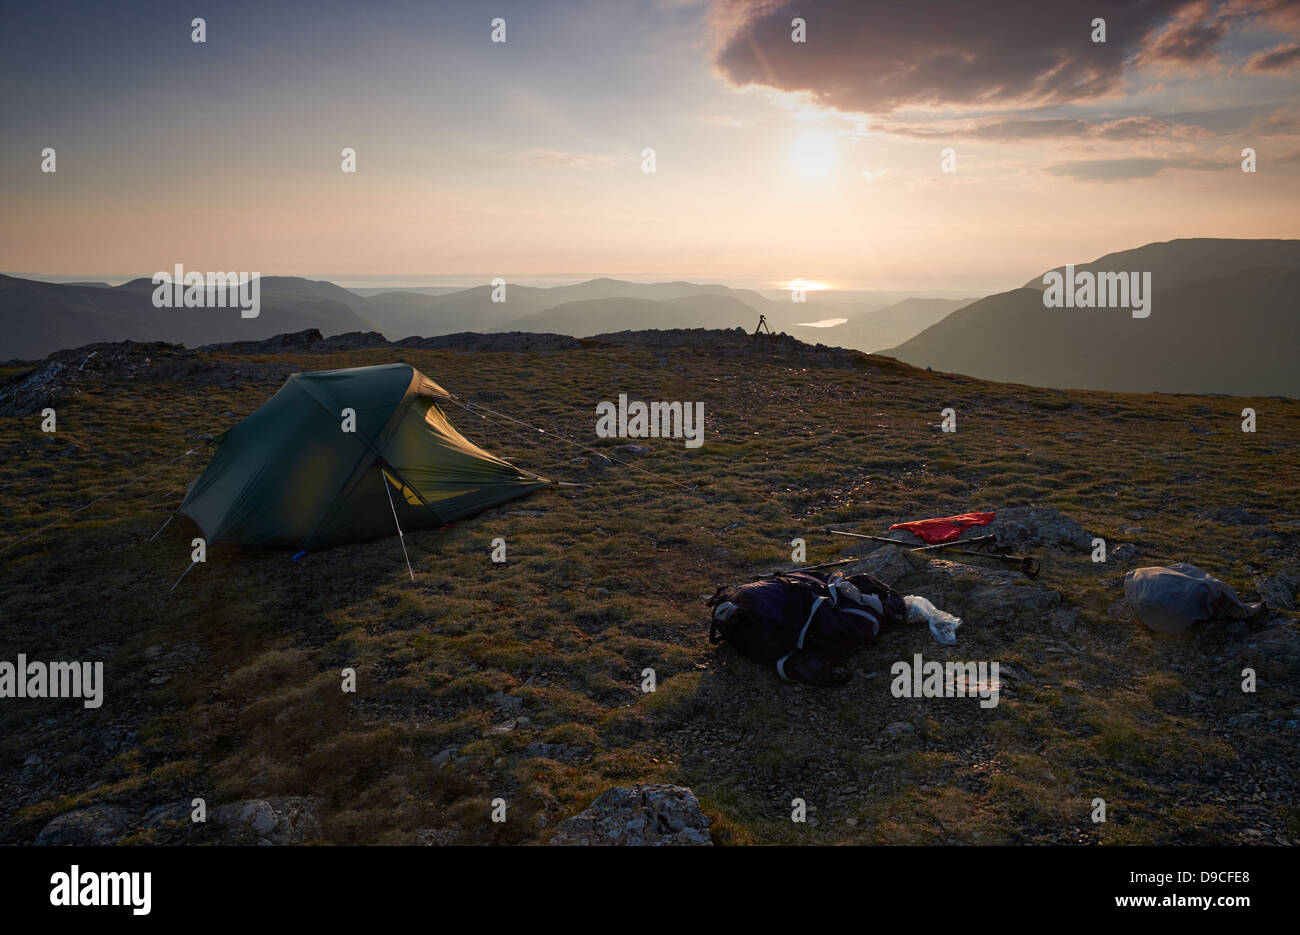 Wild camping on the summit of Robinson, Buttermere in the Lake District. - Stock Image